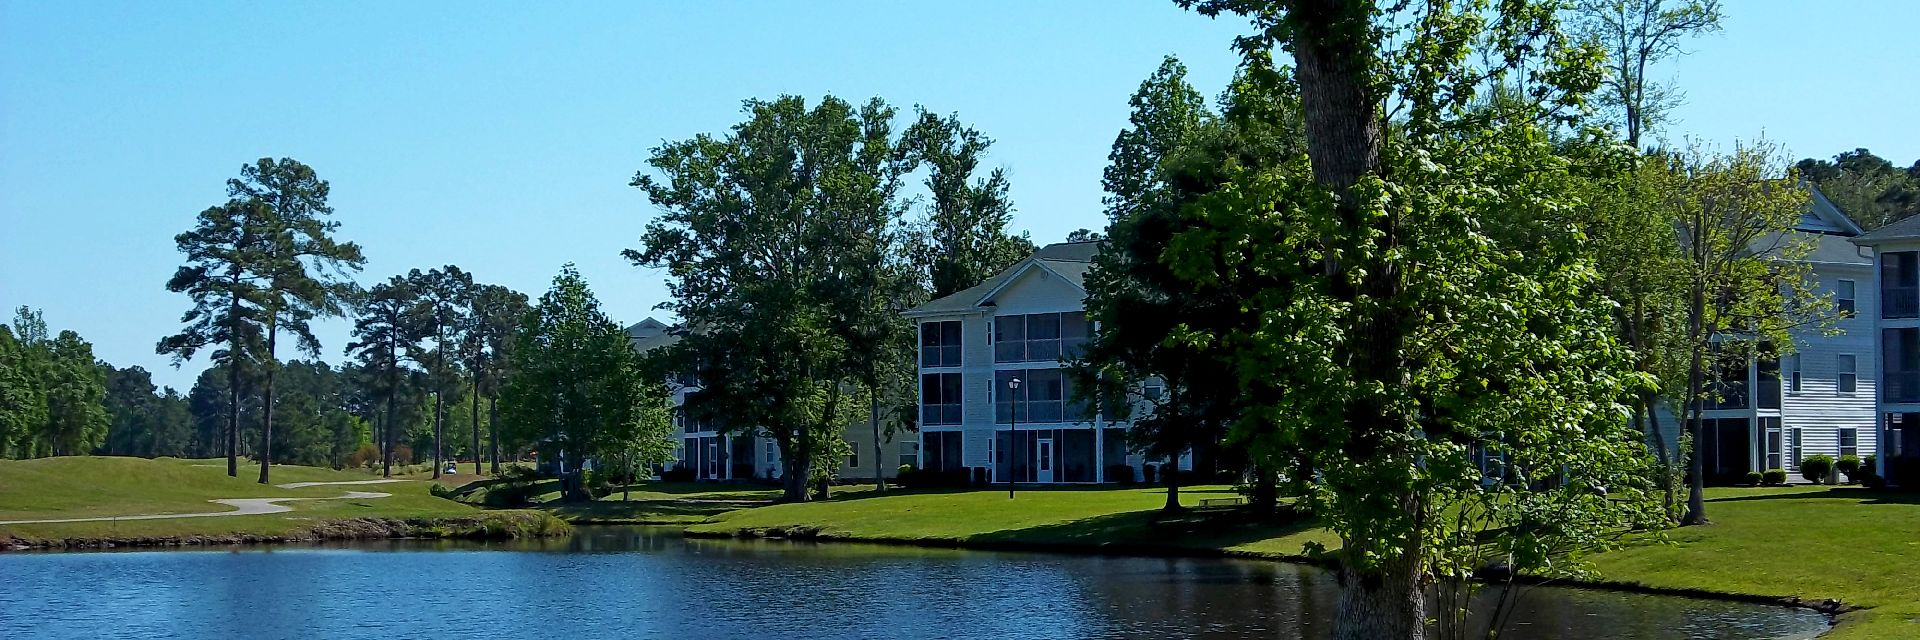 River Oaks Condos Overlooking River Oaks Golf Course Myrtle Beach SC